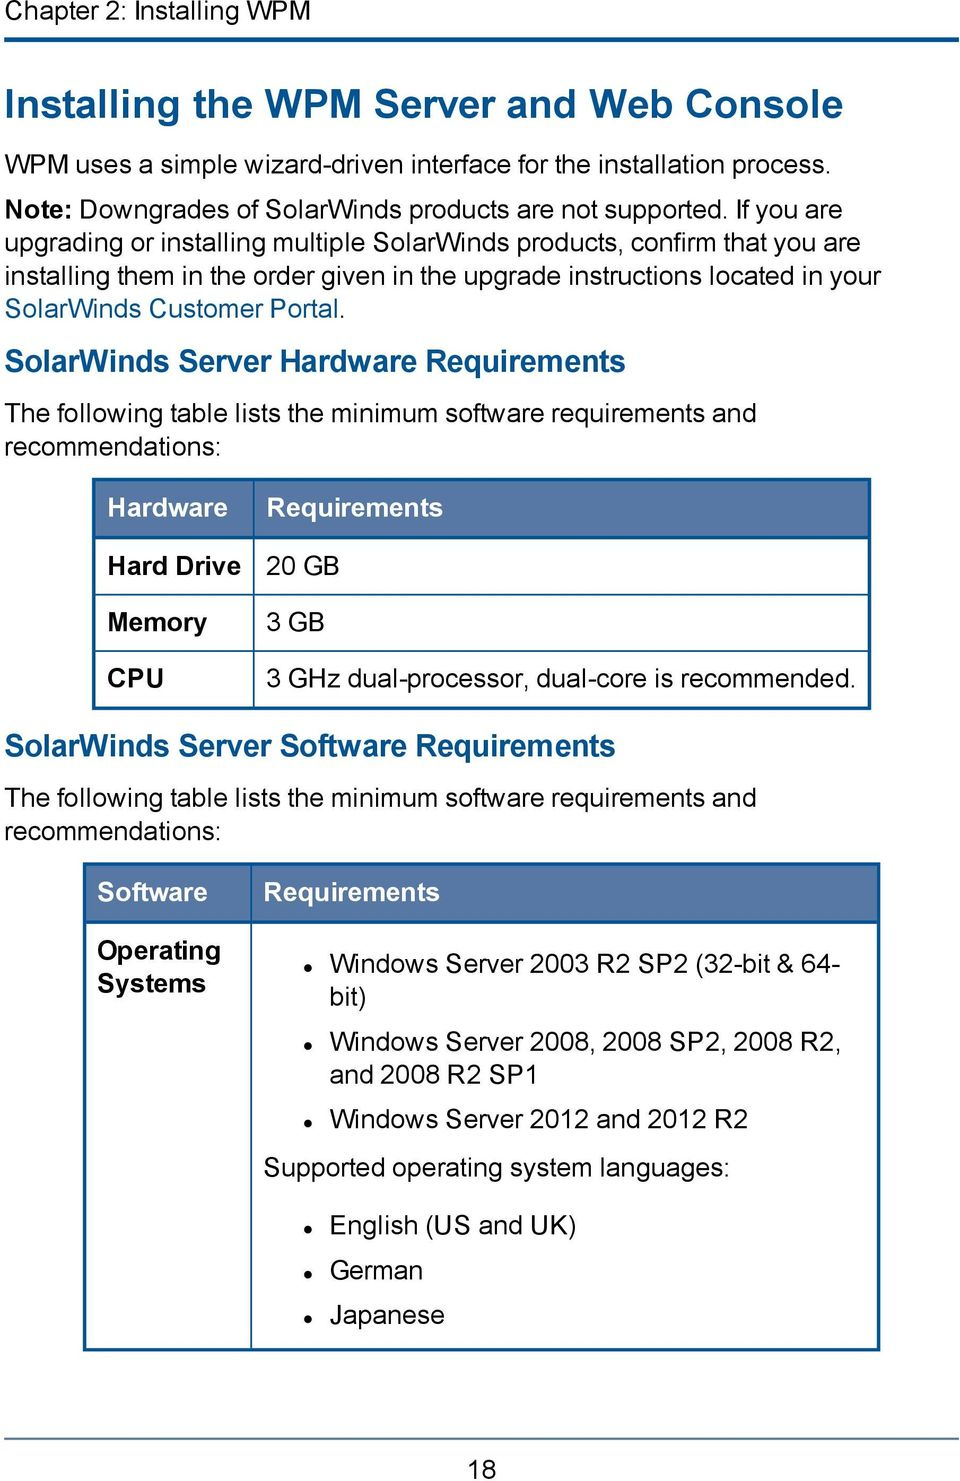 SolarWinds Server Hardware Requirements The following table lists the minimum software requirements and recommendations: Hardware Hard Drive Memory CPU Requirements 20 GB 3 GB 3 GHz dual-processor,